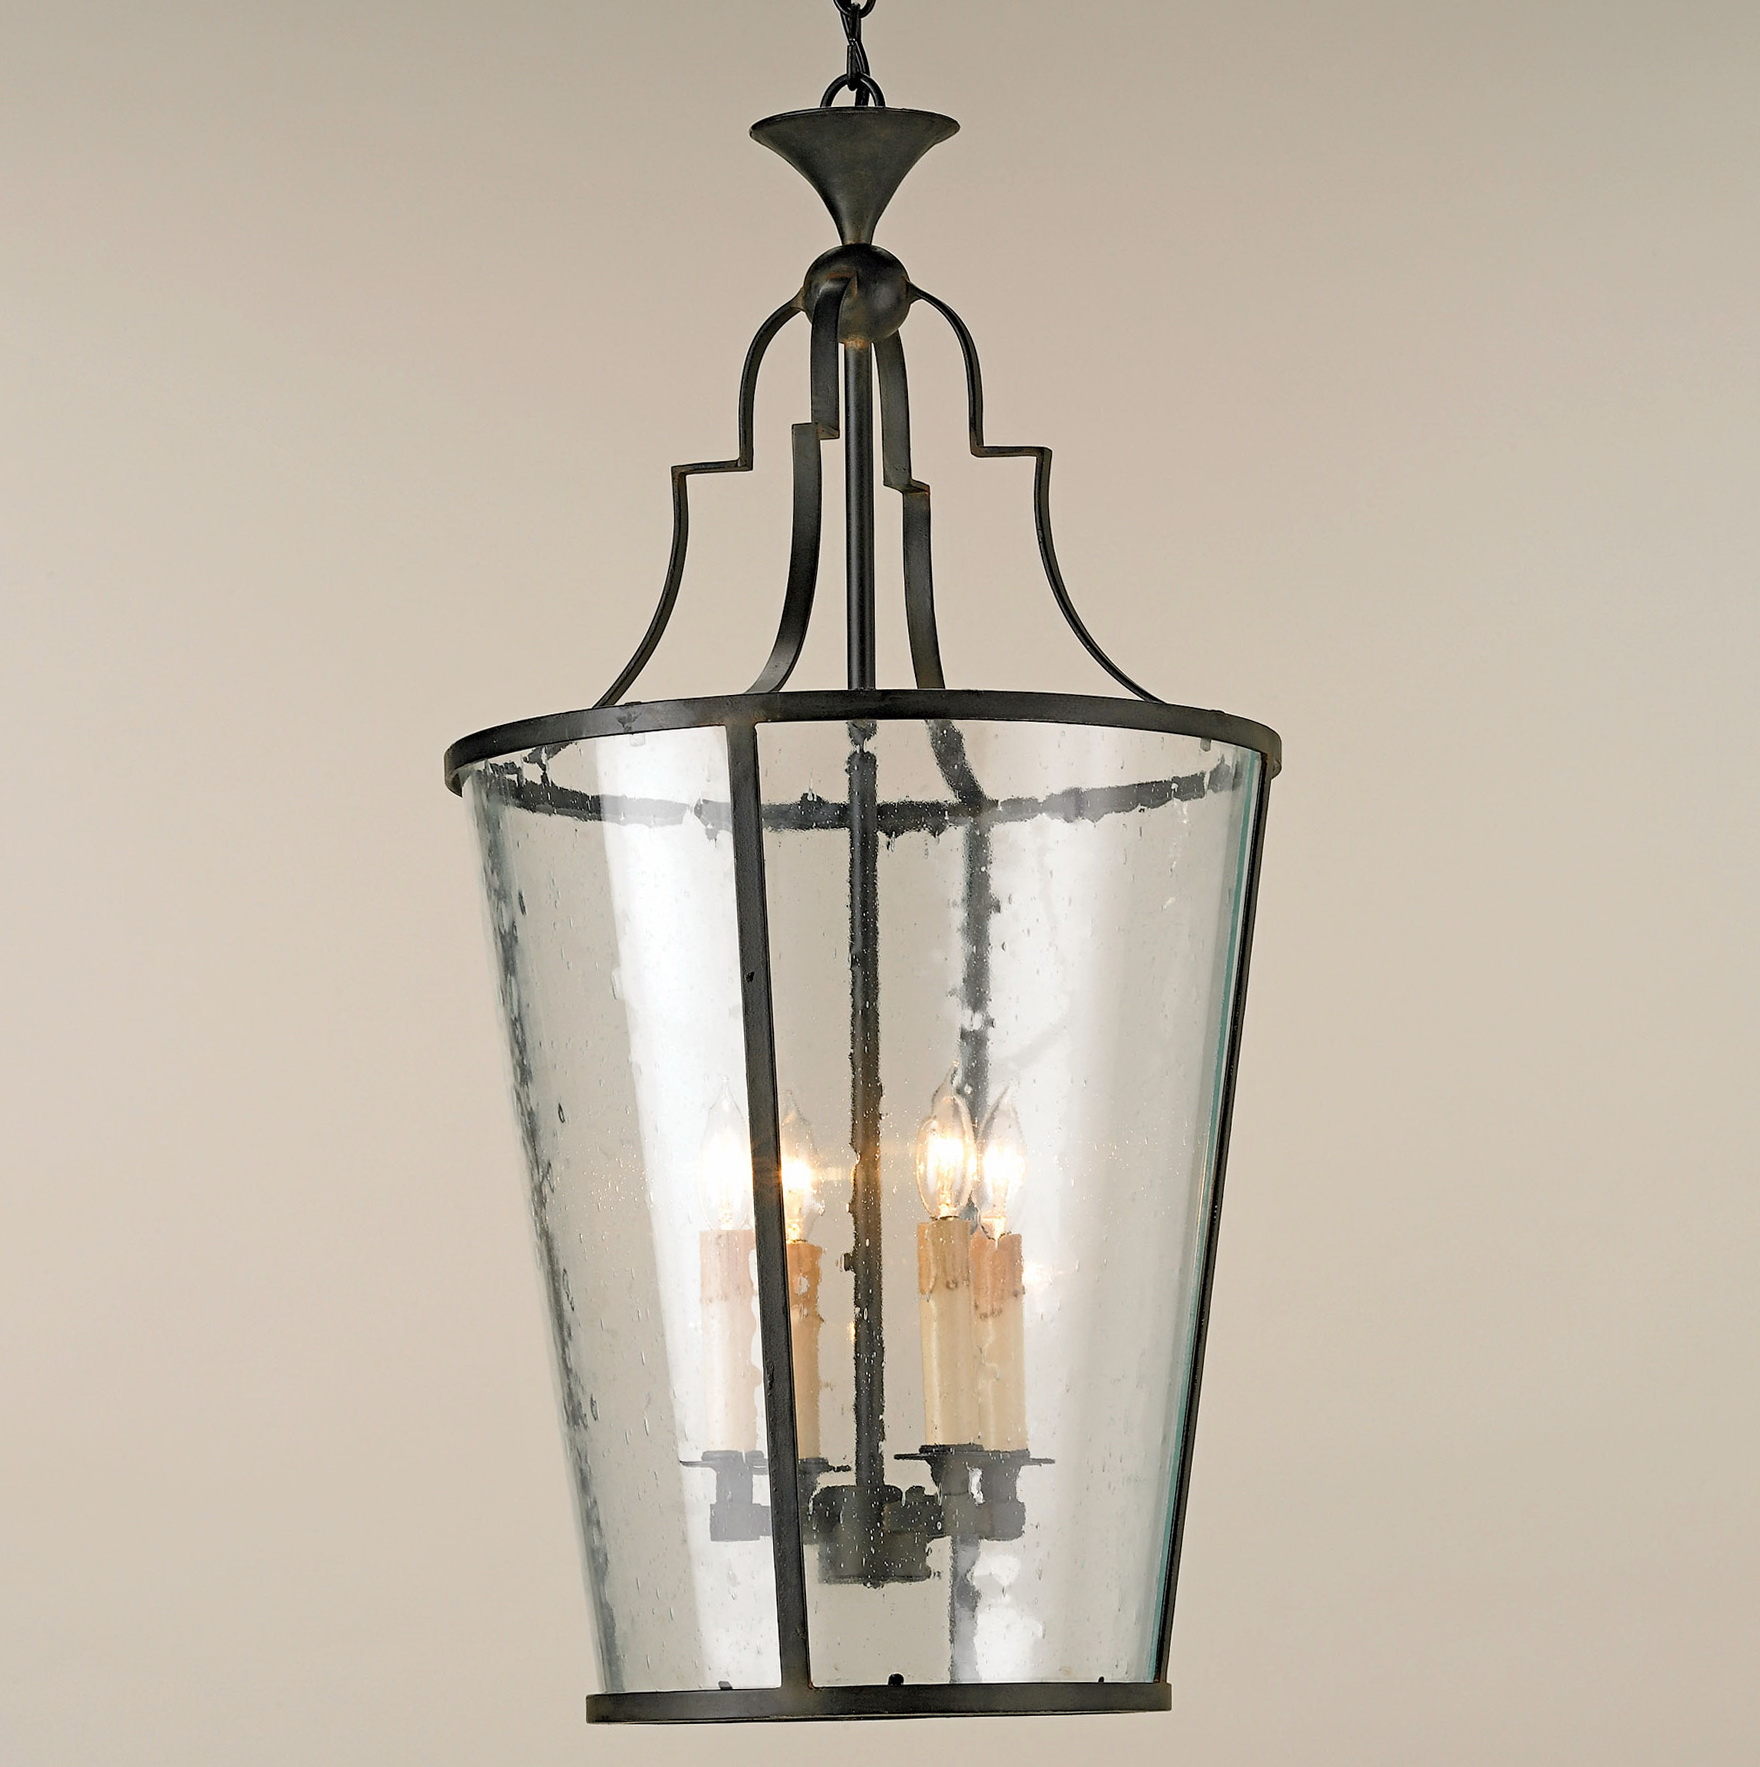 Large Foyer Lantern : Lantern chandelier for foyer home design ideas